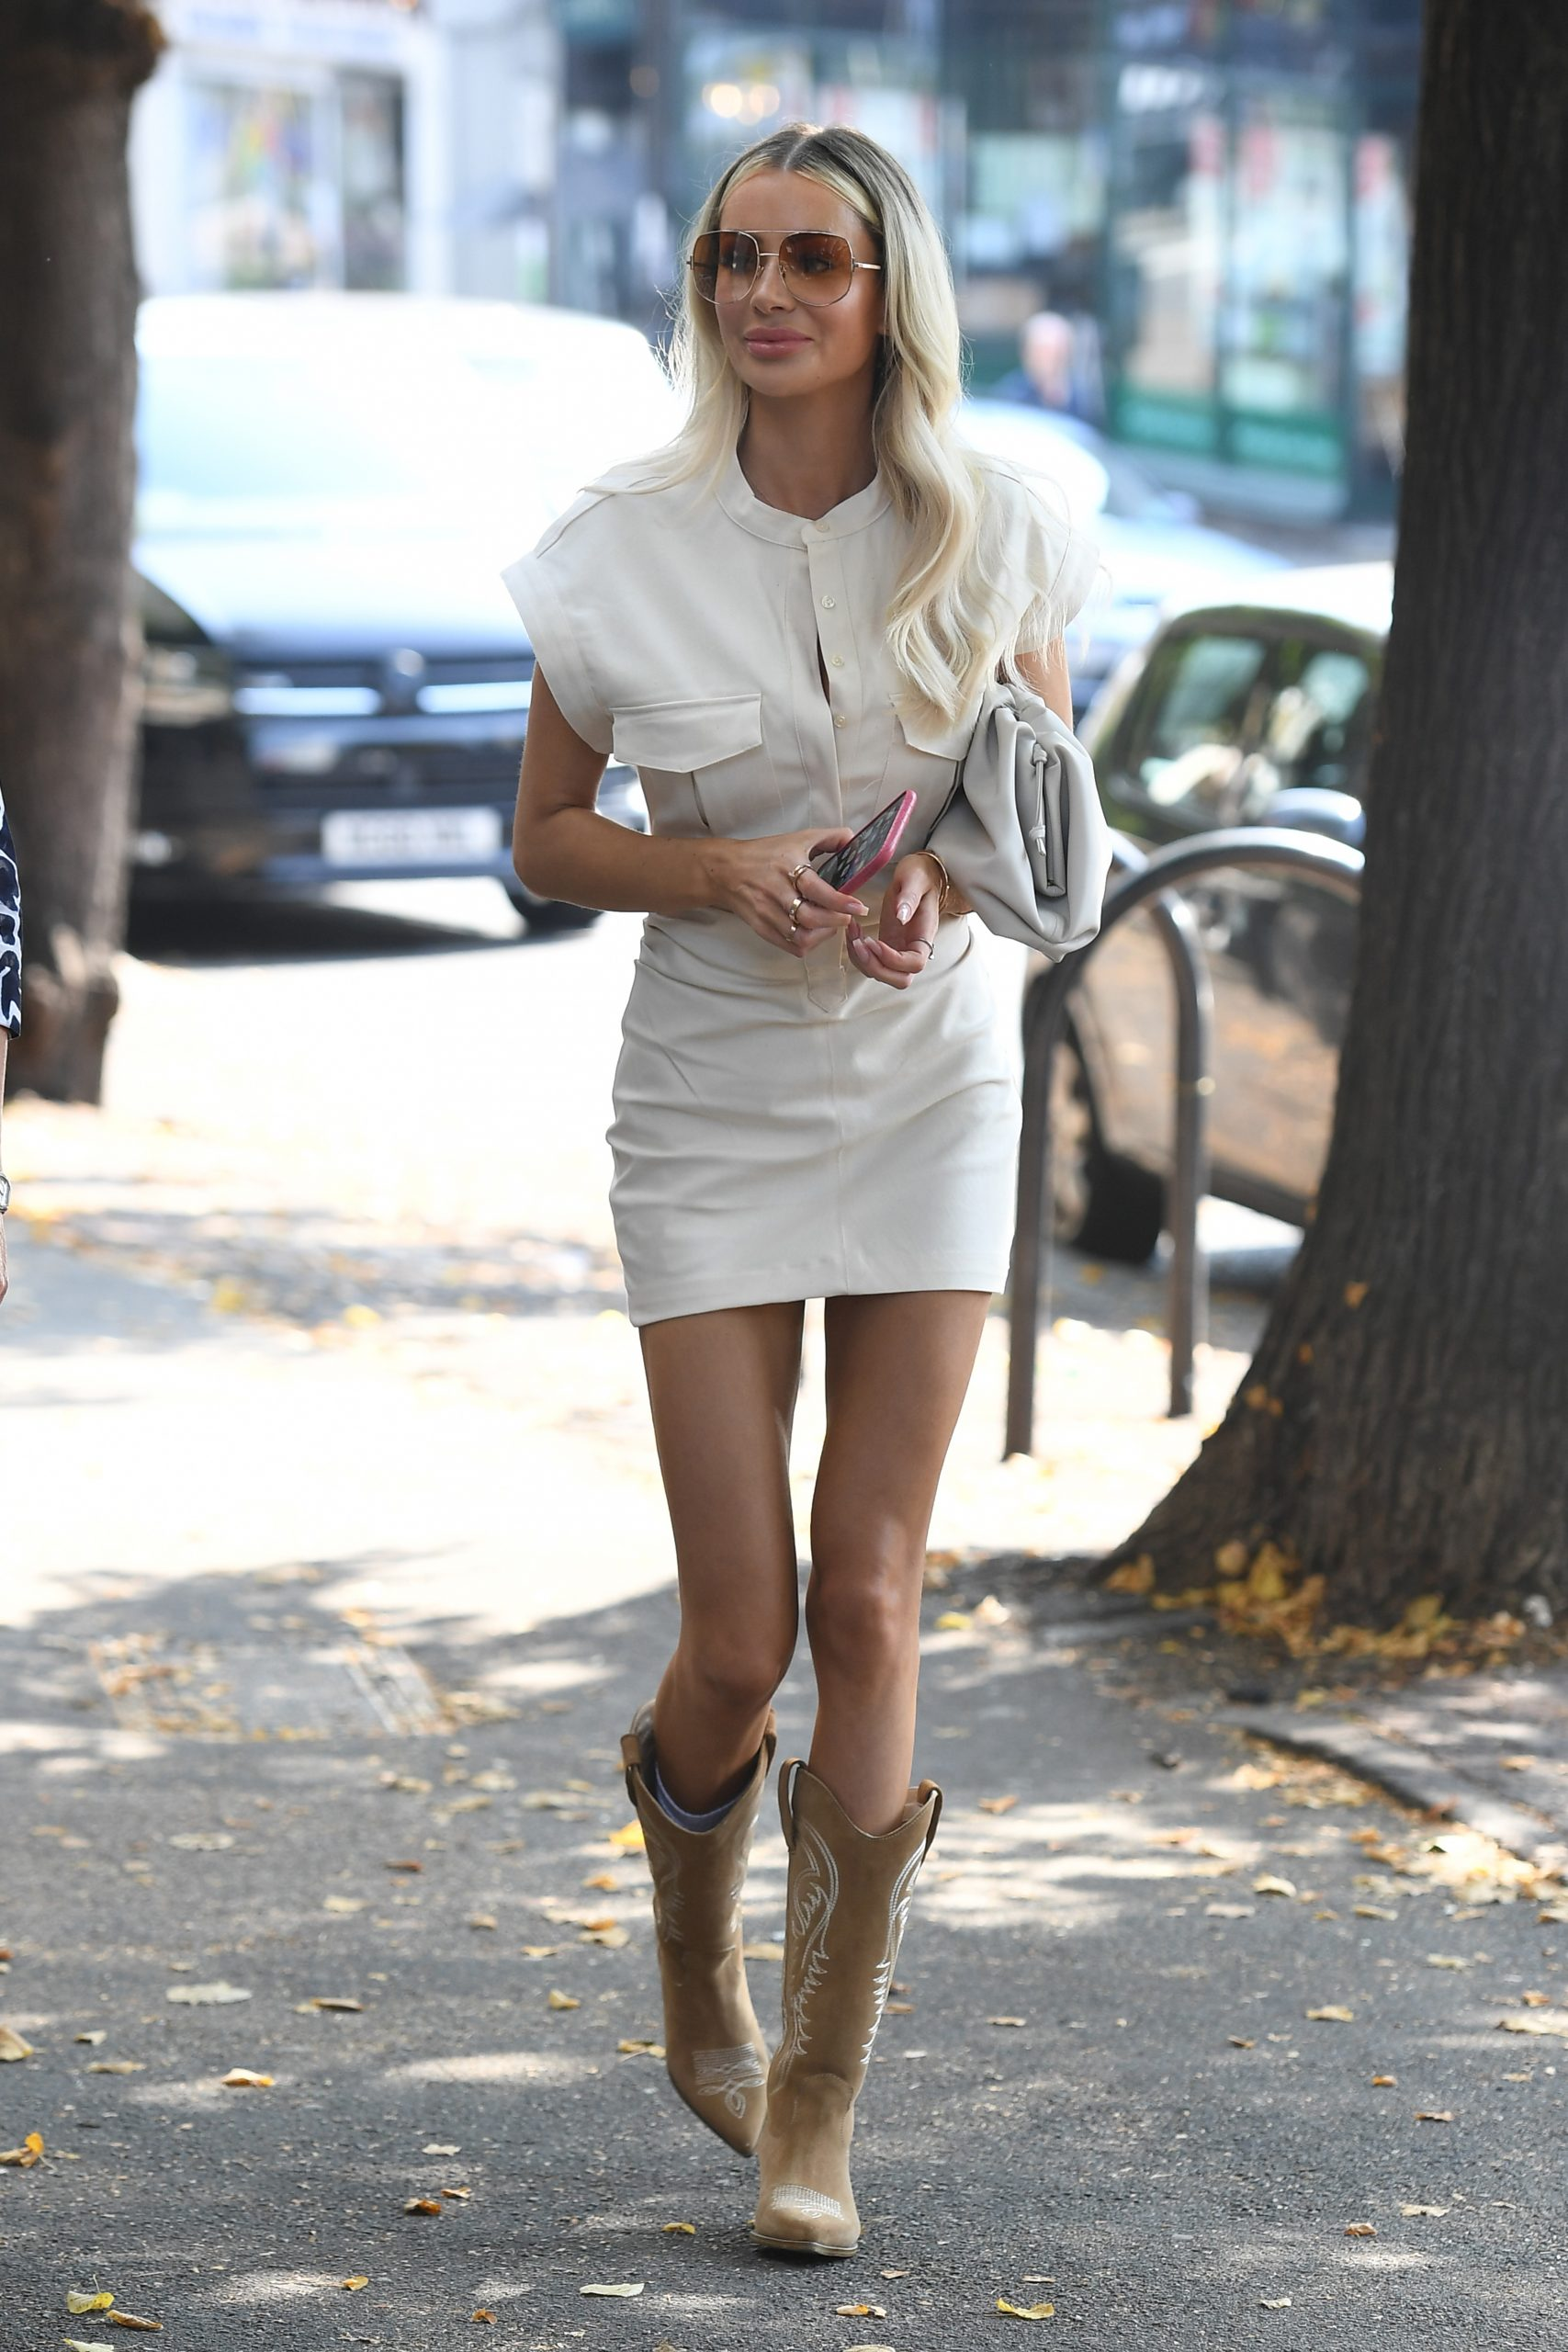 Olivia Attwood 2020 : Olivia Attwood – Leggy in white dress while out in London-14